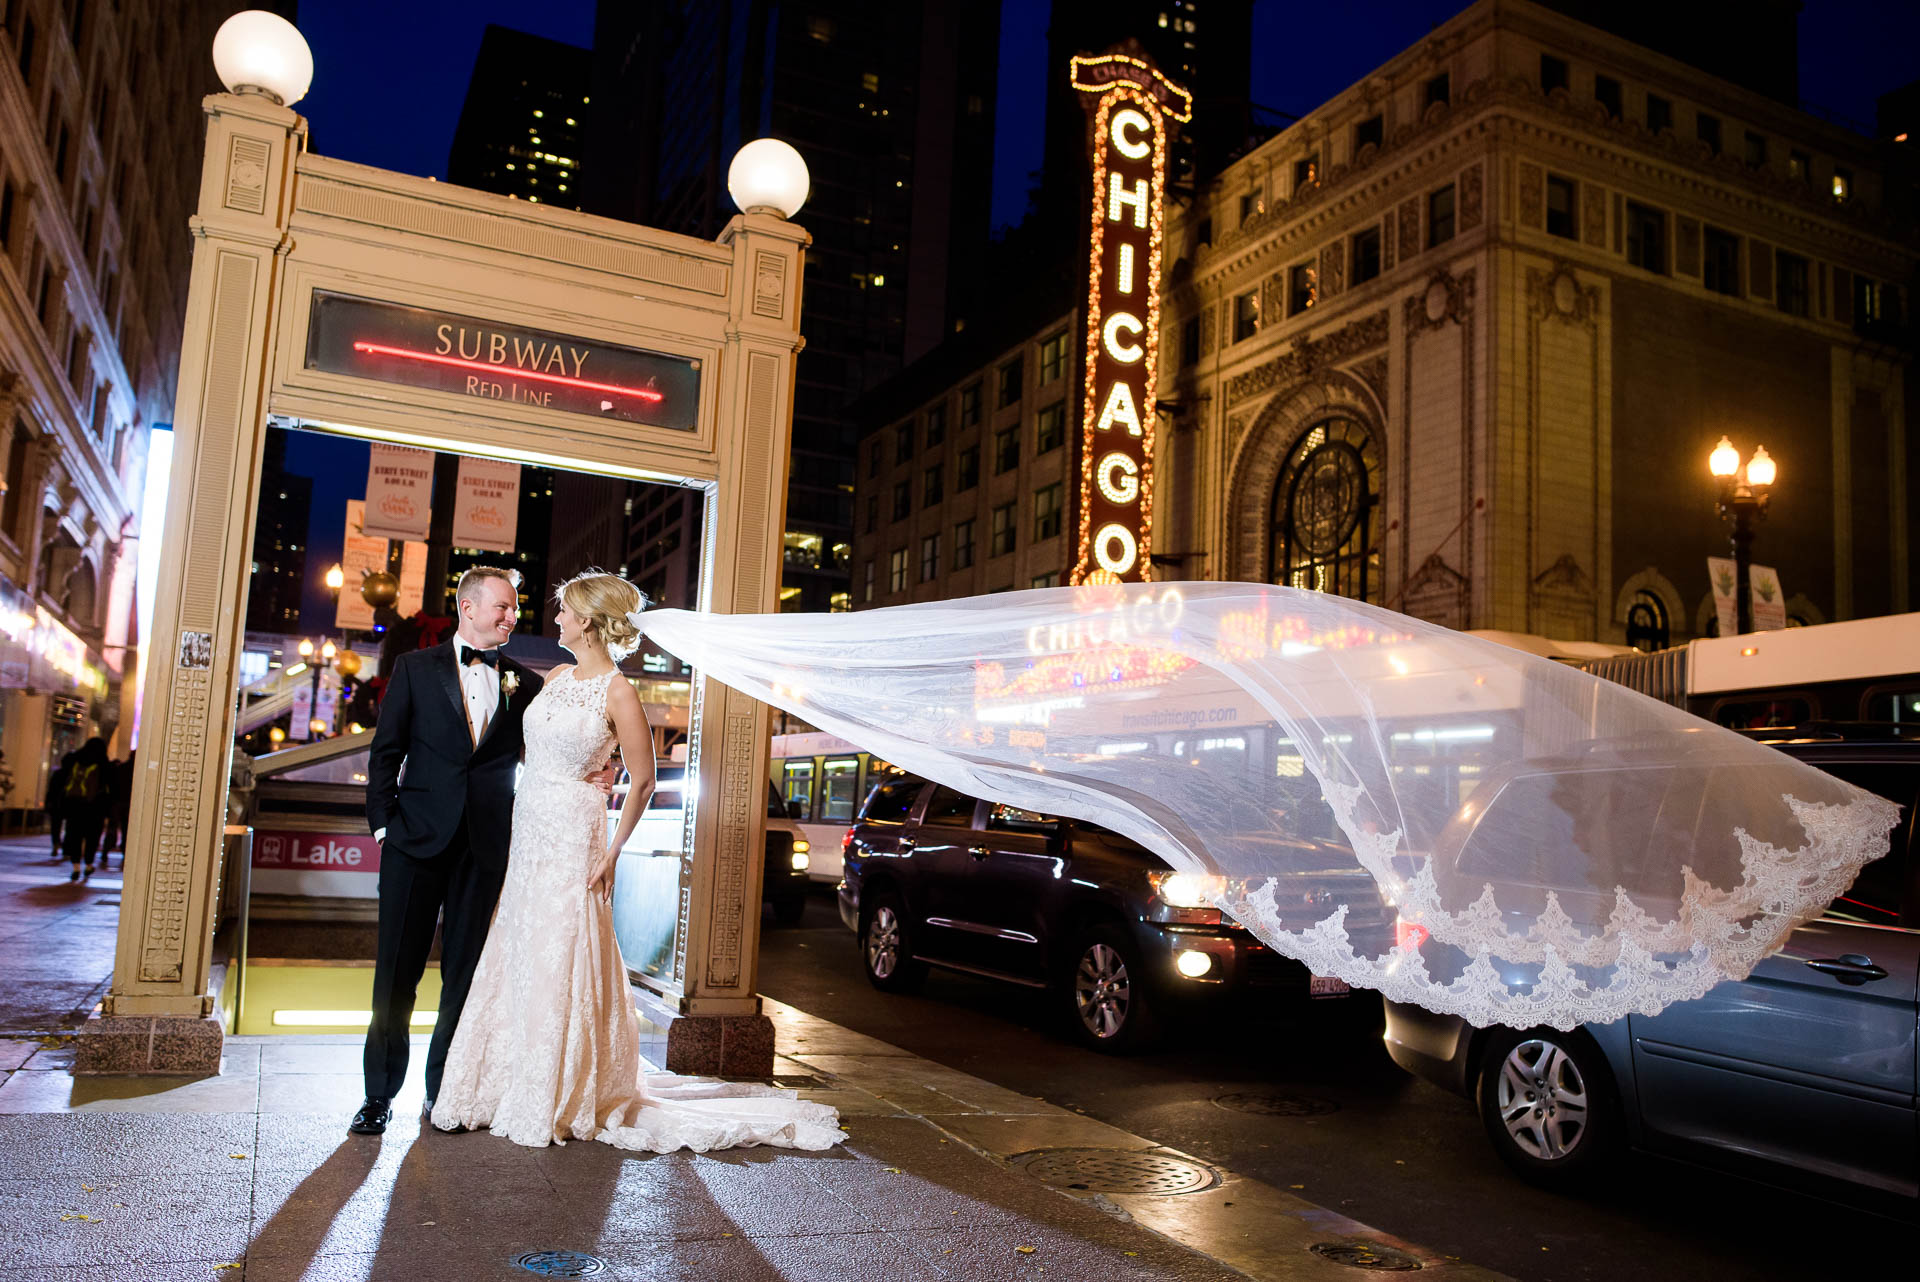 Bride and groom wedding photo outside the Chicago Theater during their Mid-America Club wedding.